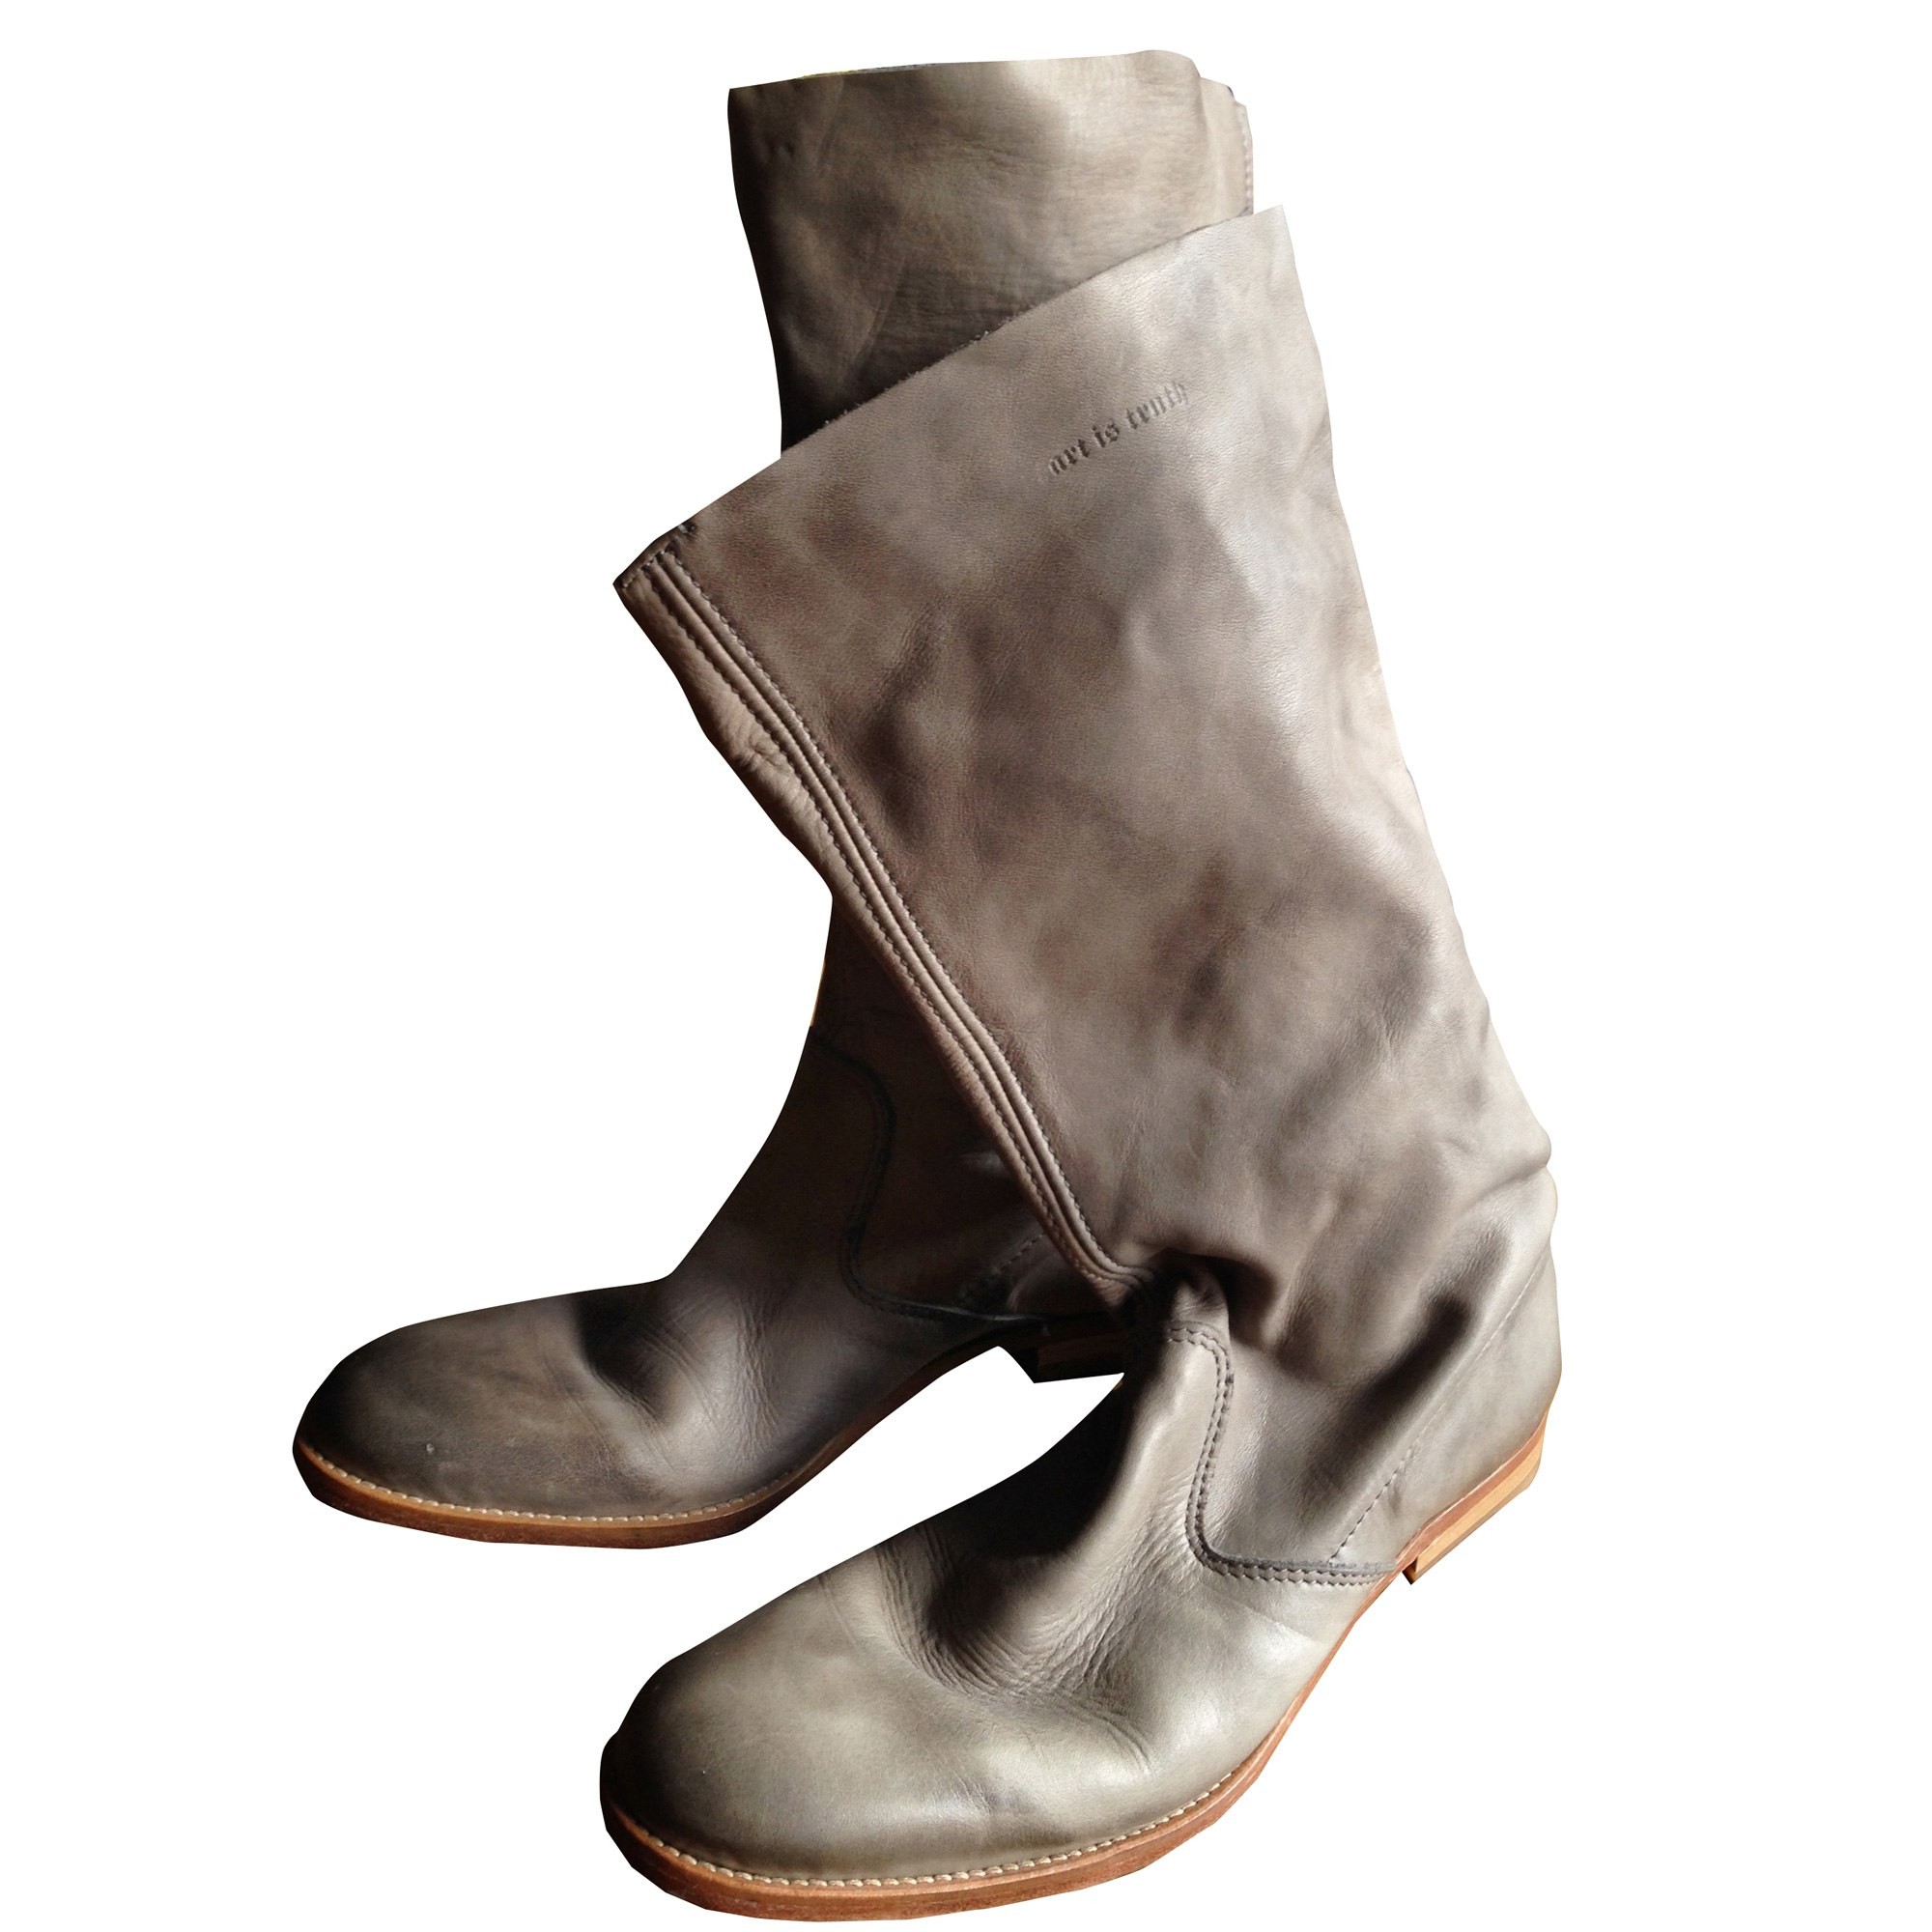 Bottes plates ZADIG & VOLTAIRE Gris, anthracite